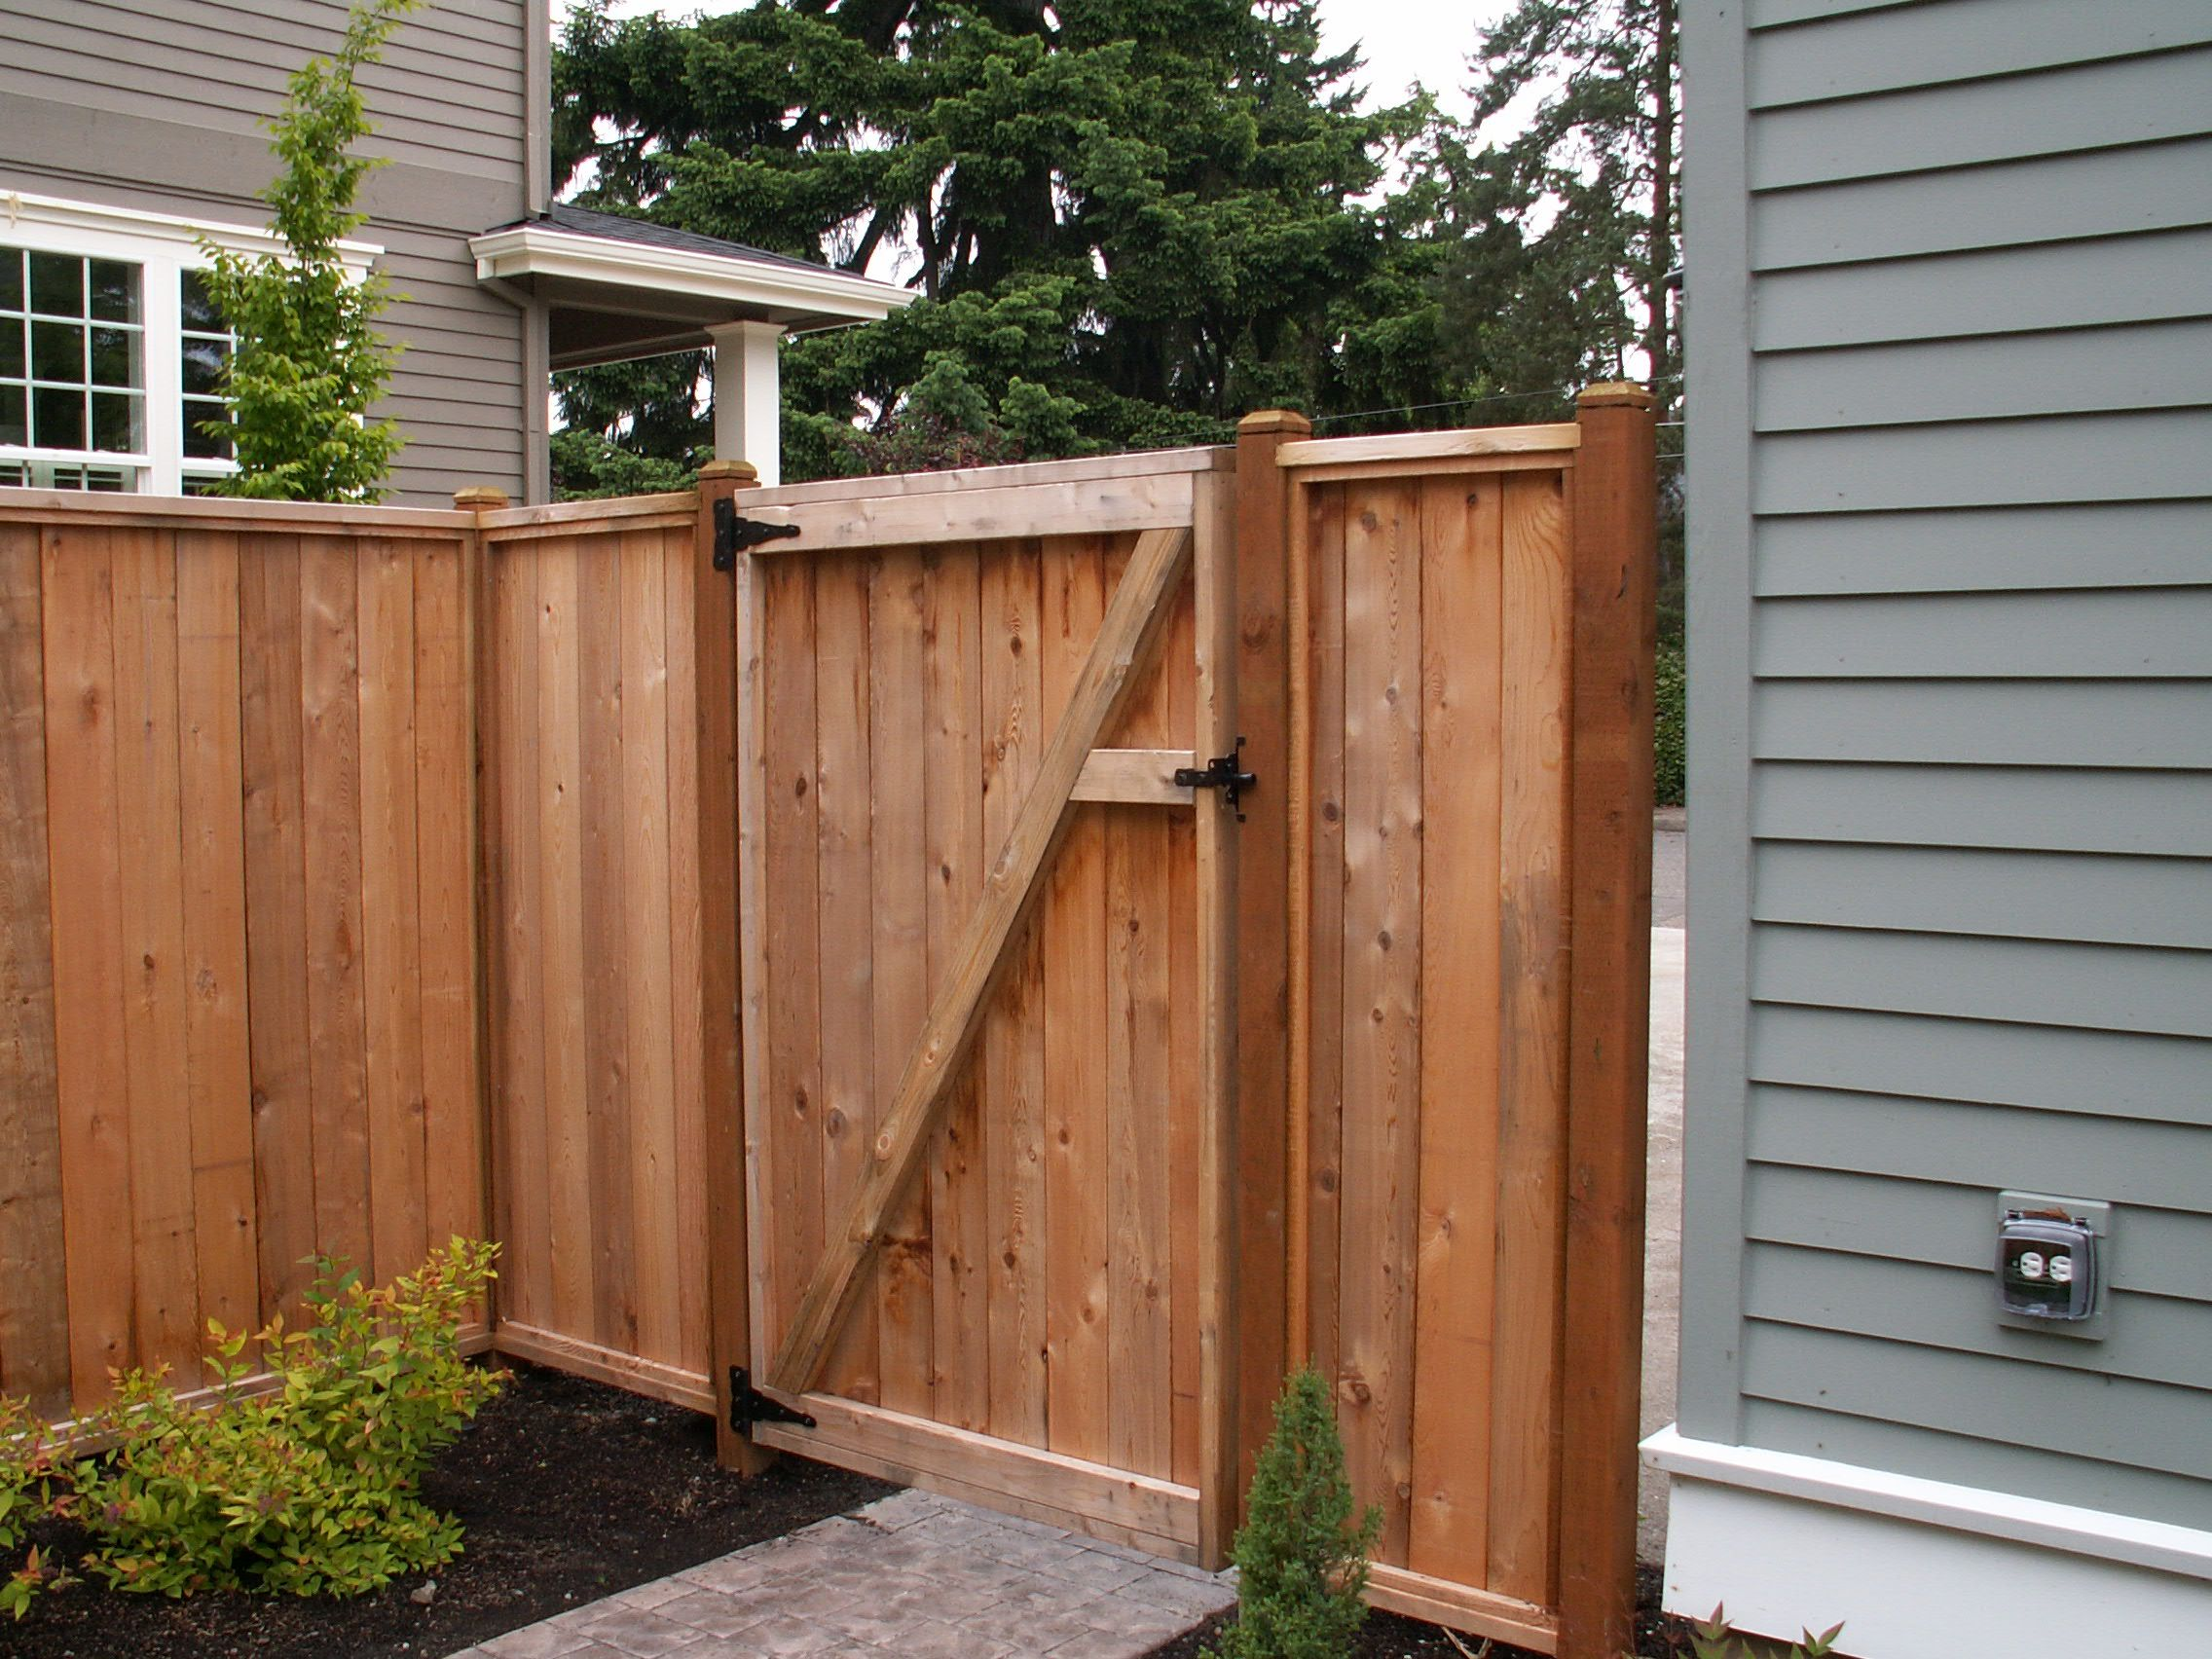 wood fence with gate 503 760 7725 fence superiorfence. Black Bedroom Furniture Sets. Home Design Ideas